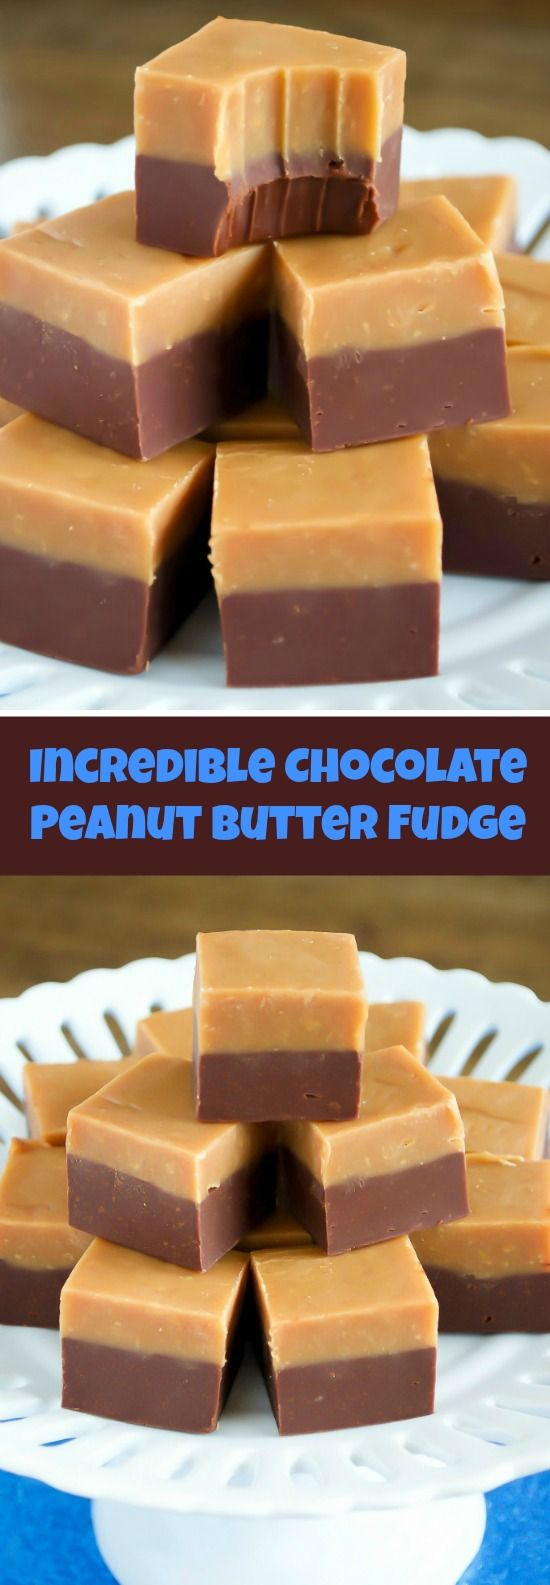 EASY Double Decker Chocolate Peanut Butter Fudge Recipe